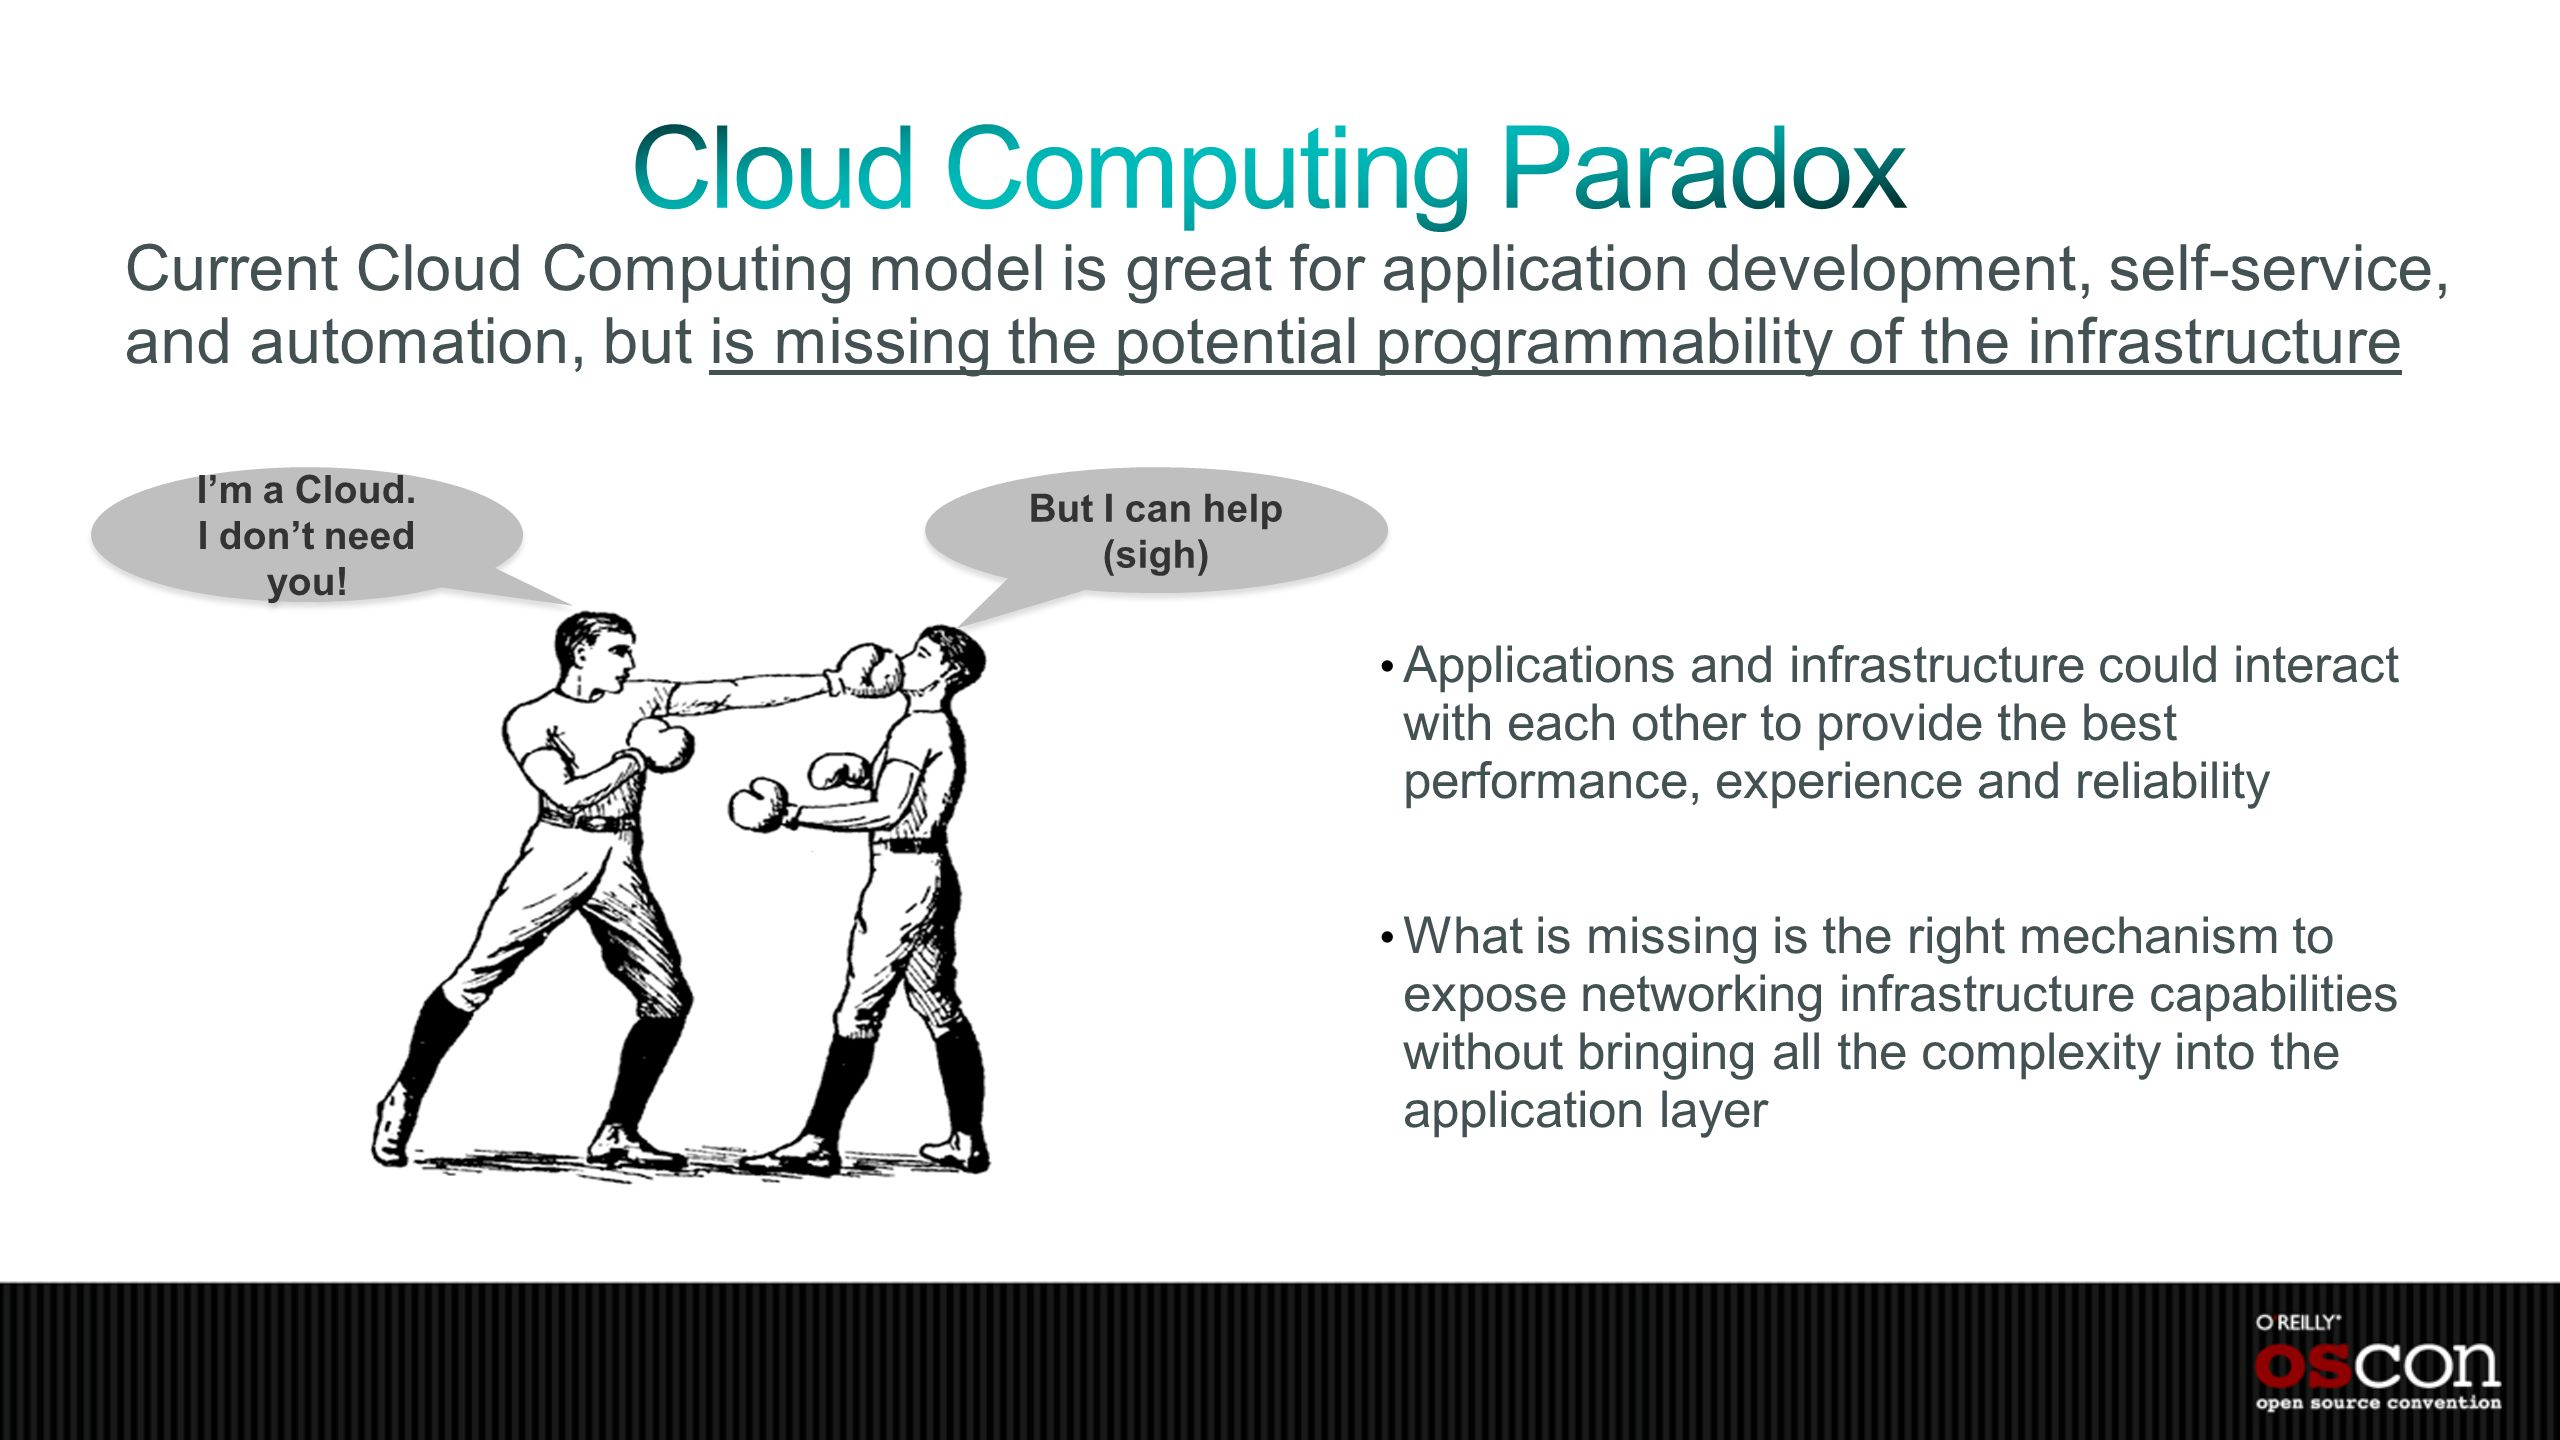 Cloud Computing Paradox